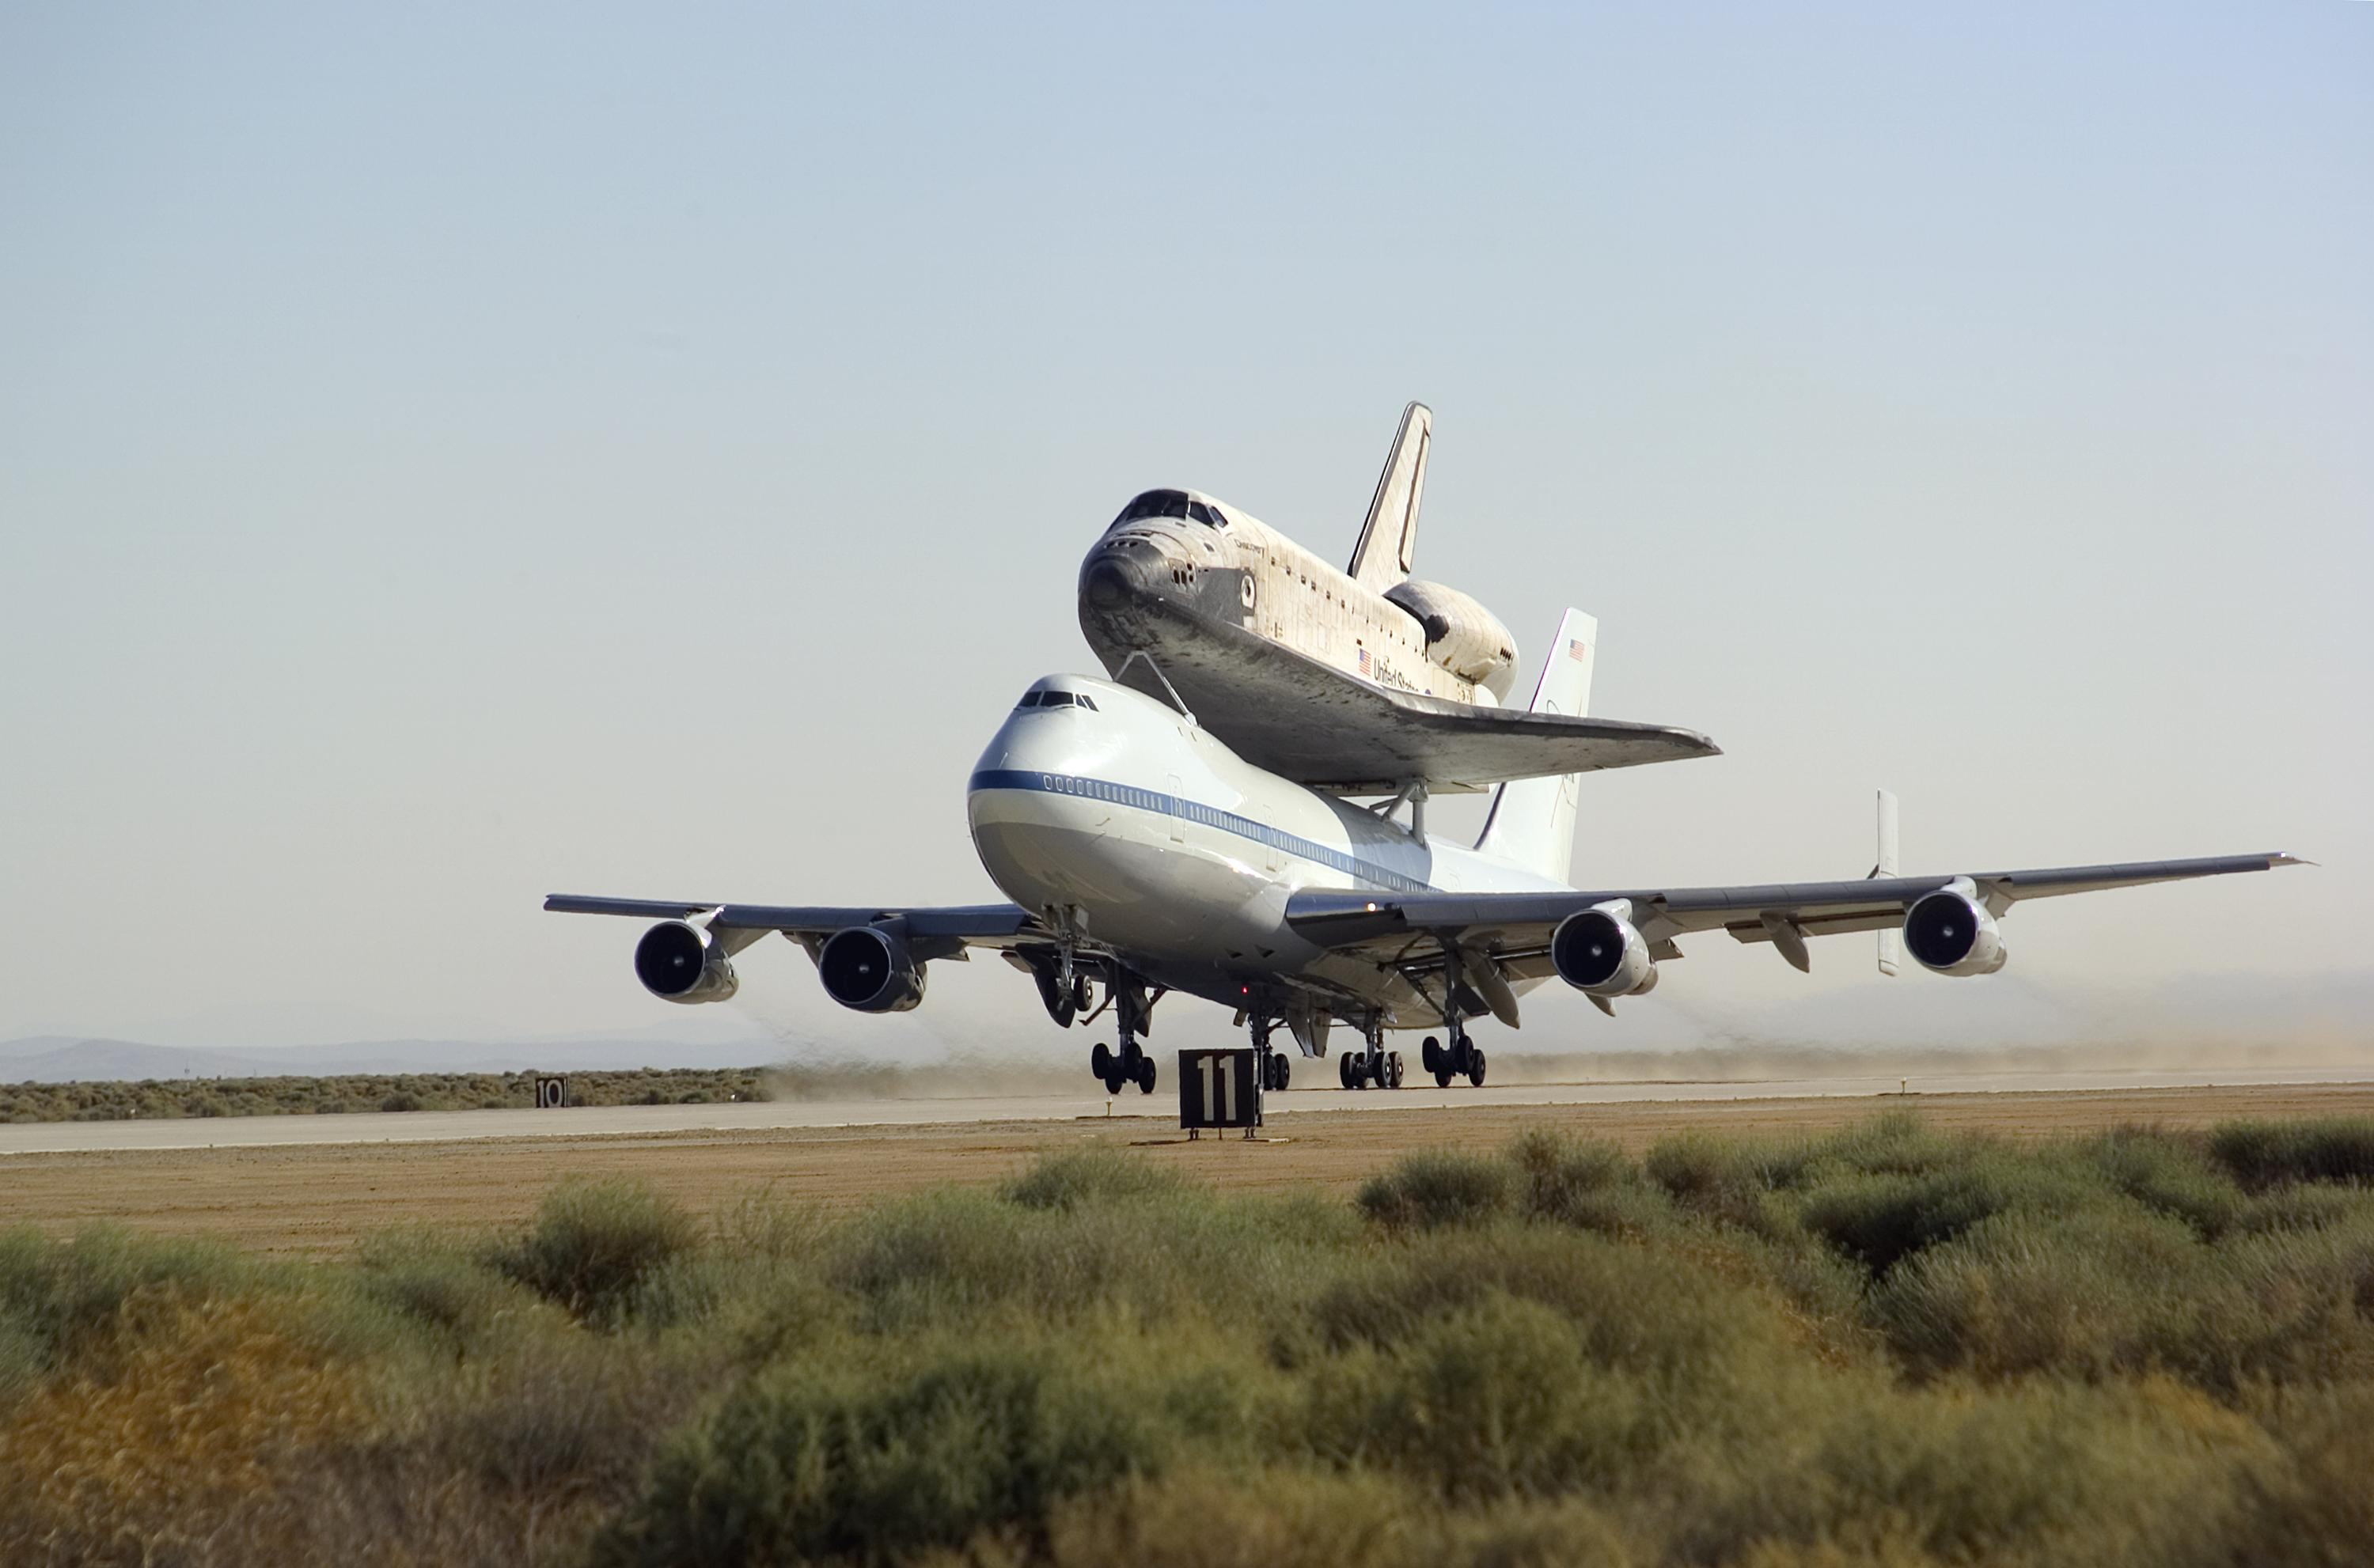 NASA's 747 Shuttle Carrier Aircraft with the Shuttle ...